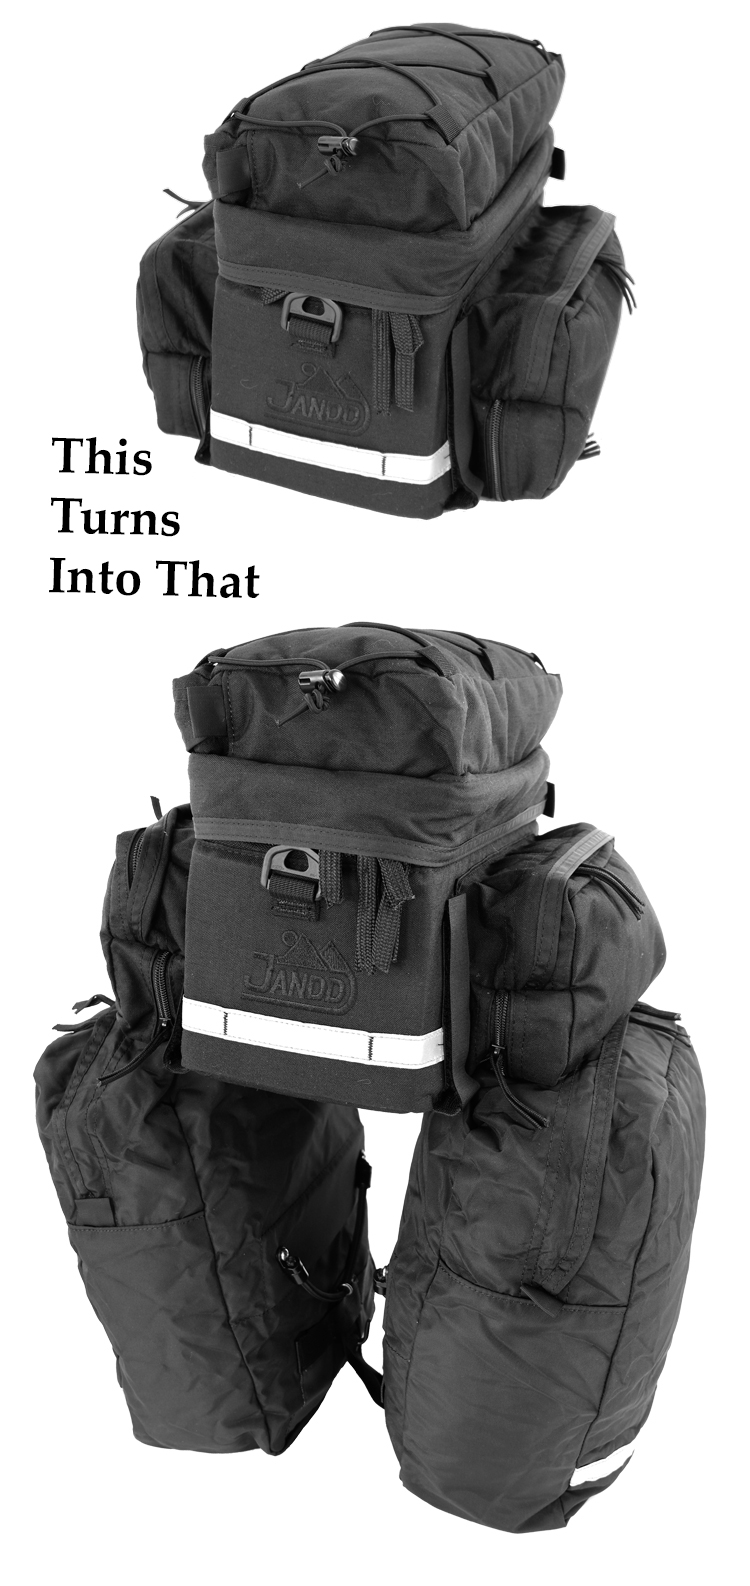 Rack Trunk with Panniers